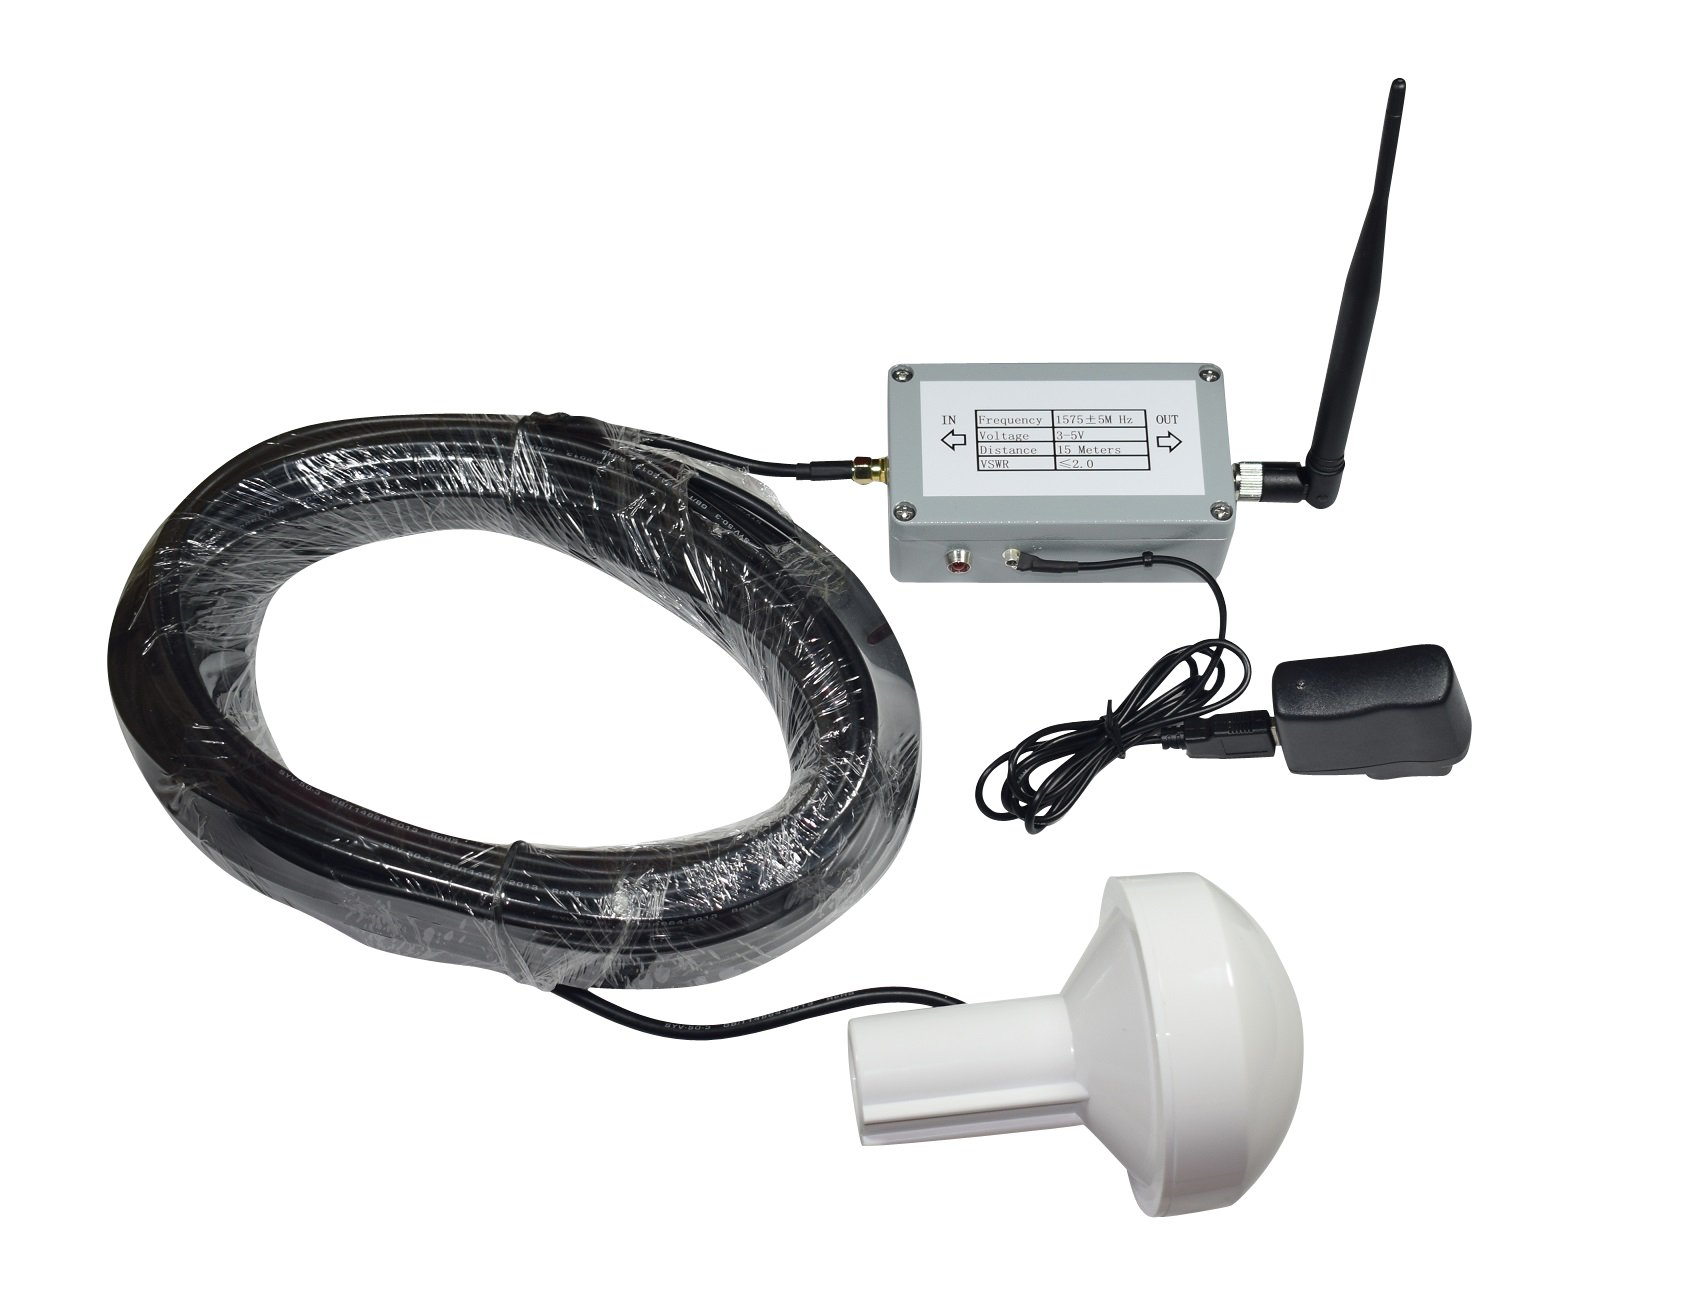 GPS Signal Repeater Transfer L1 DB2 Full Kit Distance 15 Meter by ONETAK